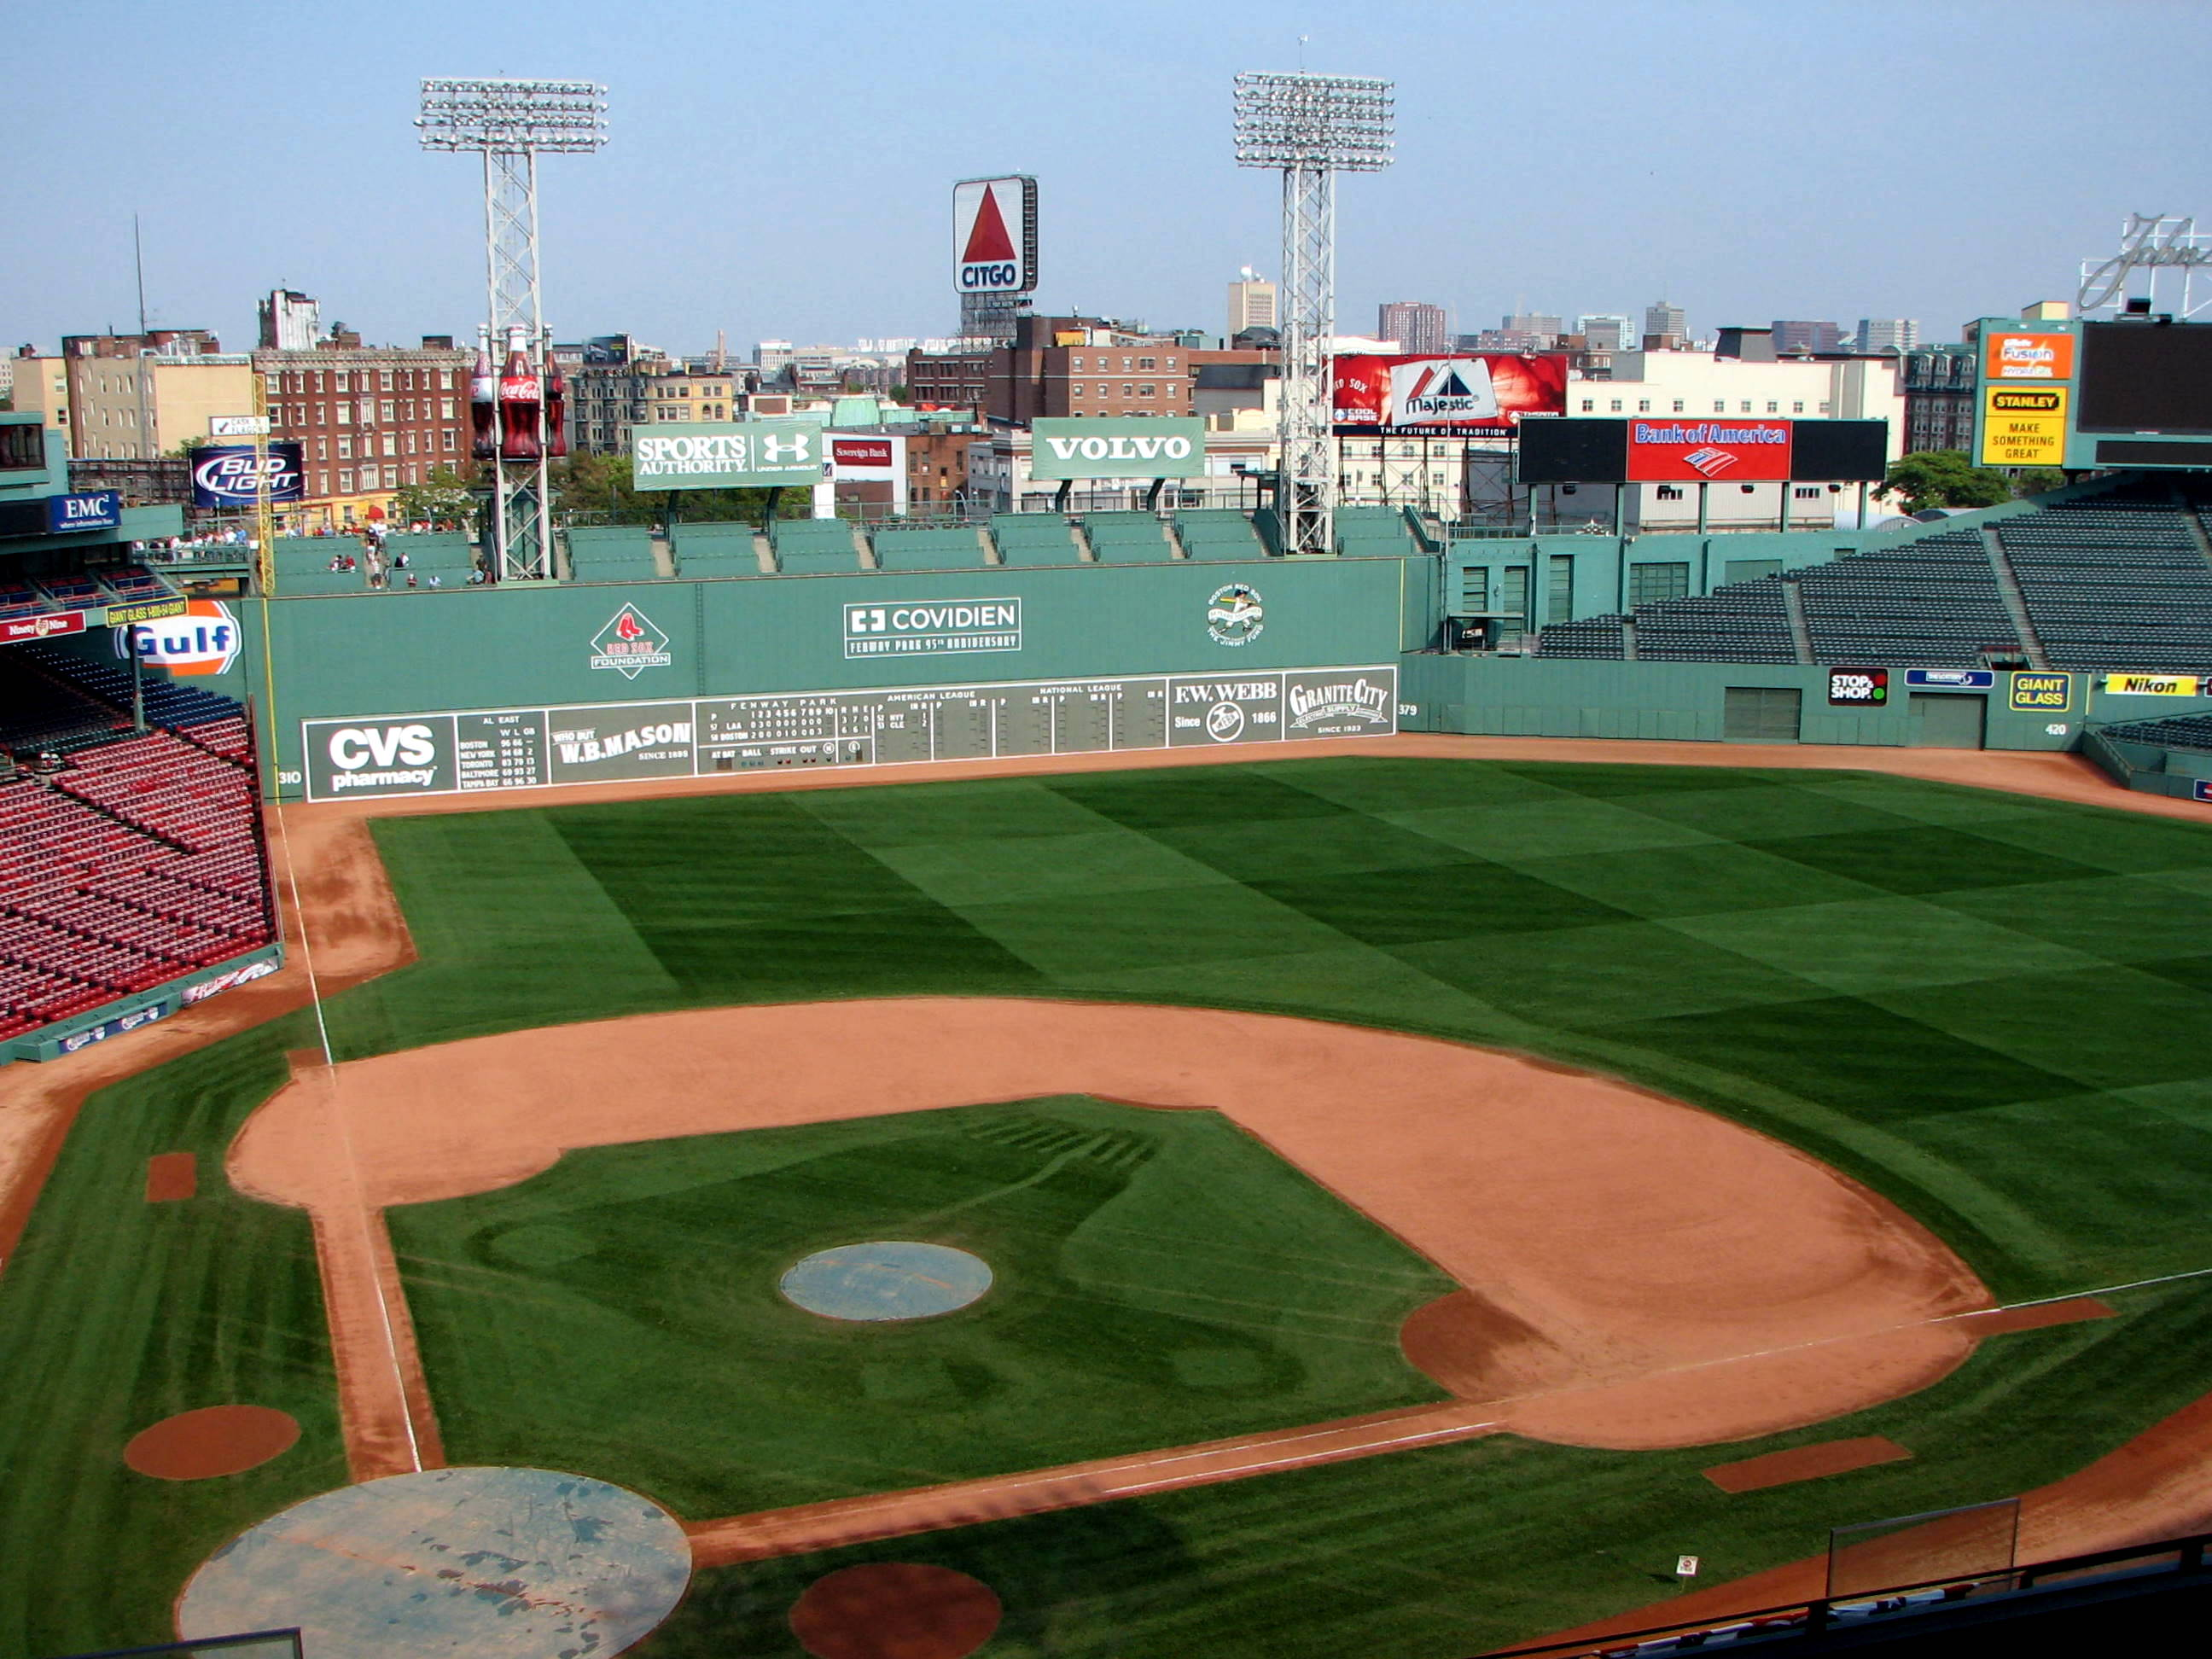 fenway park and parks - photo #14